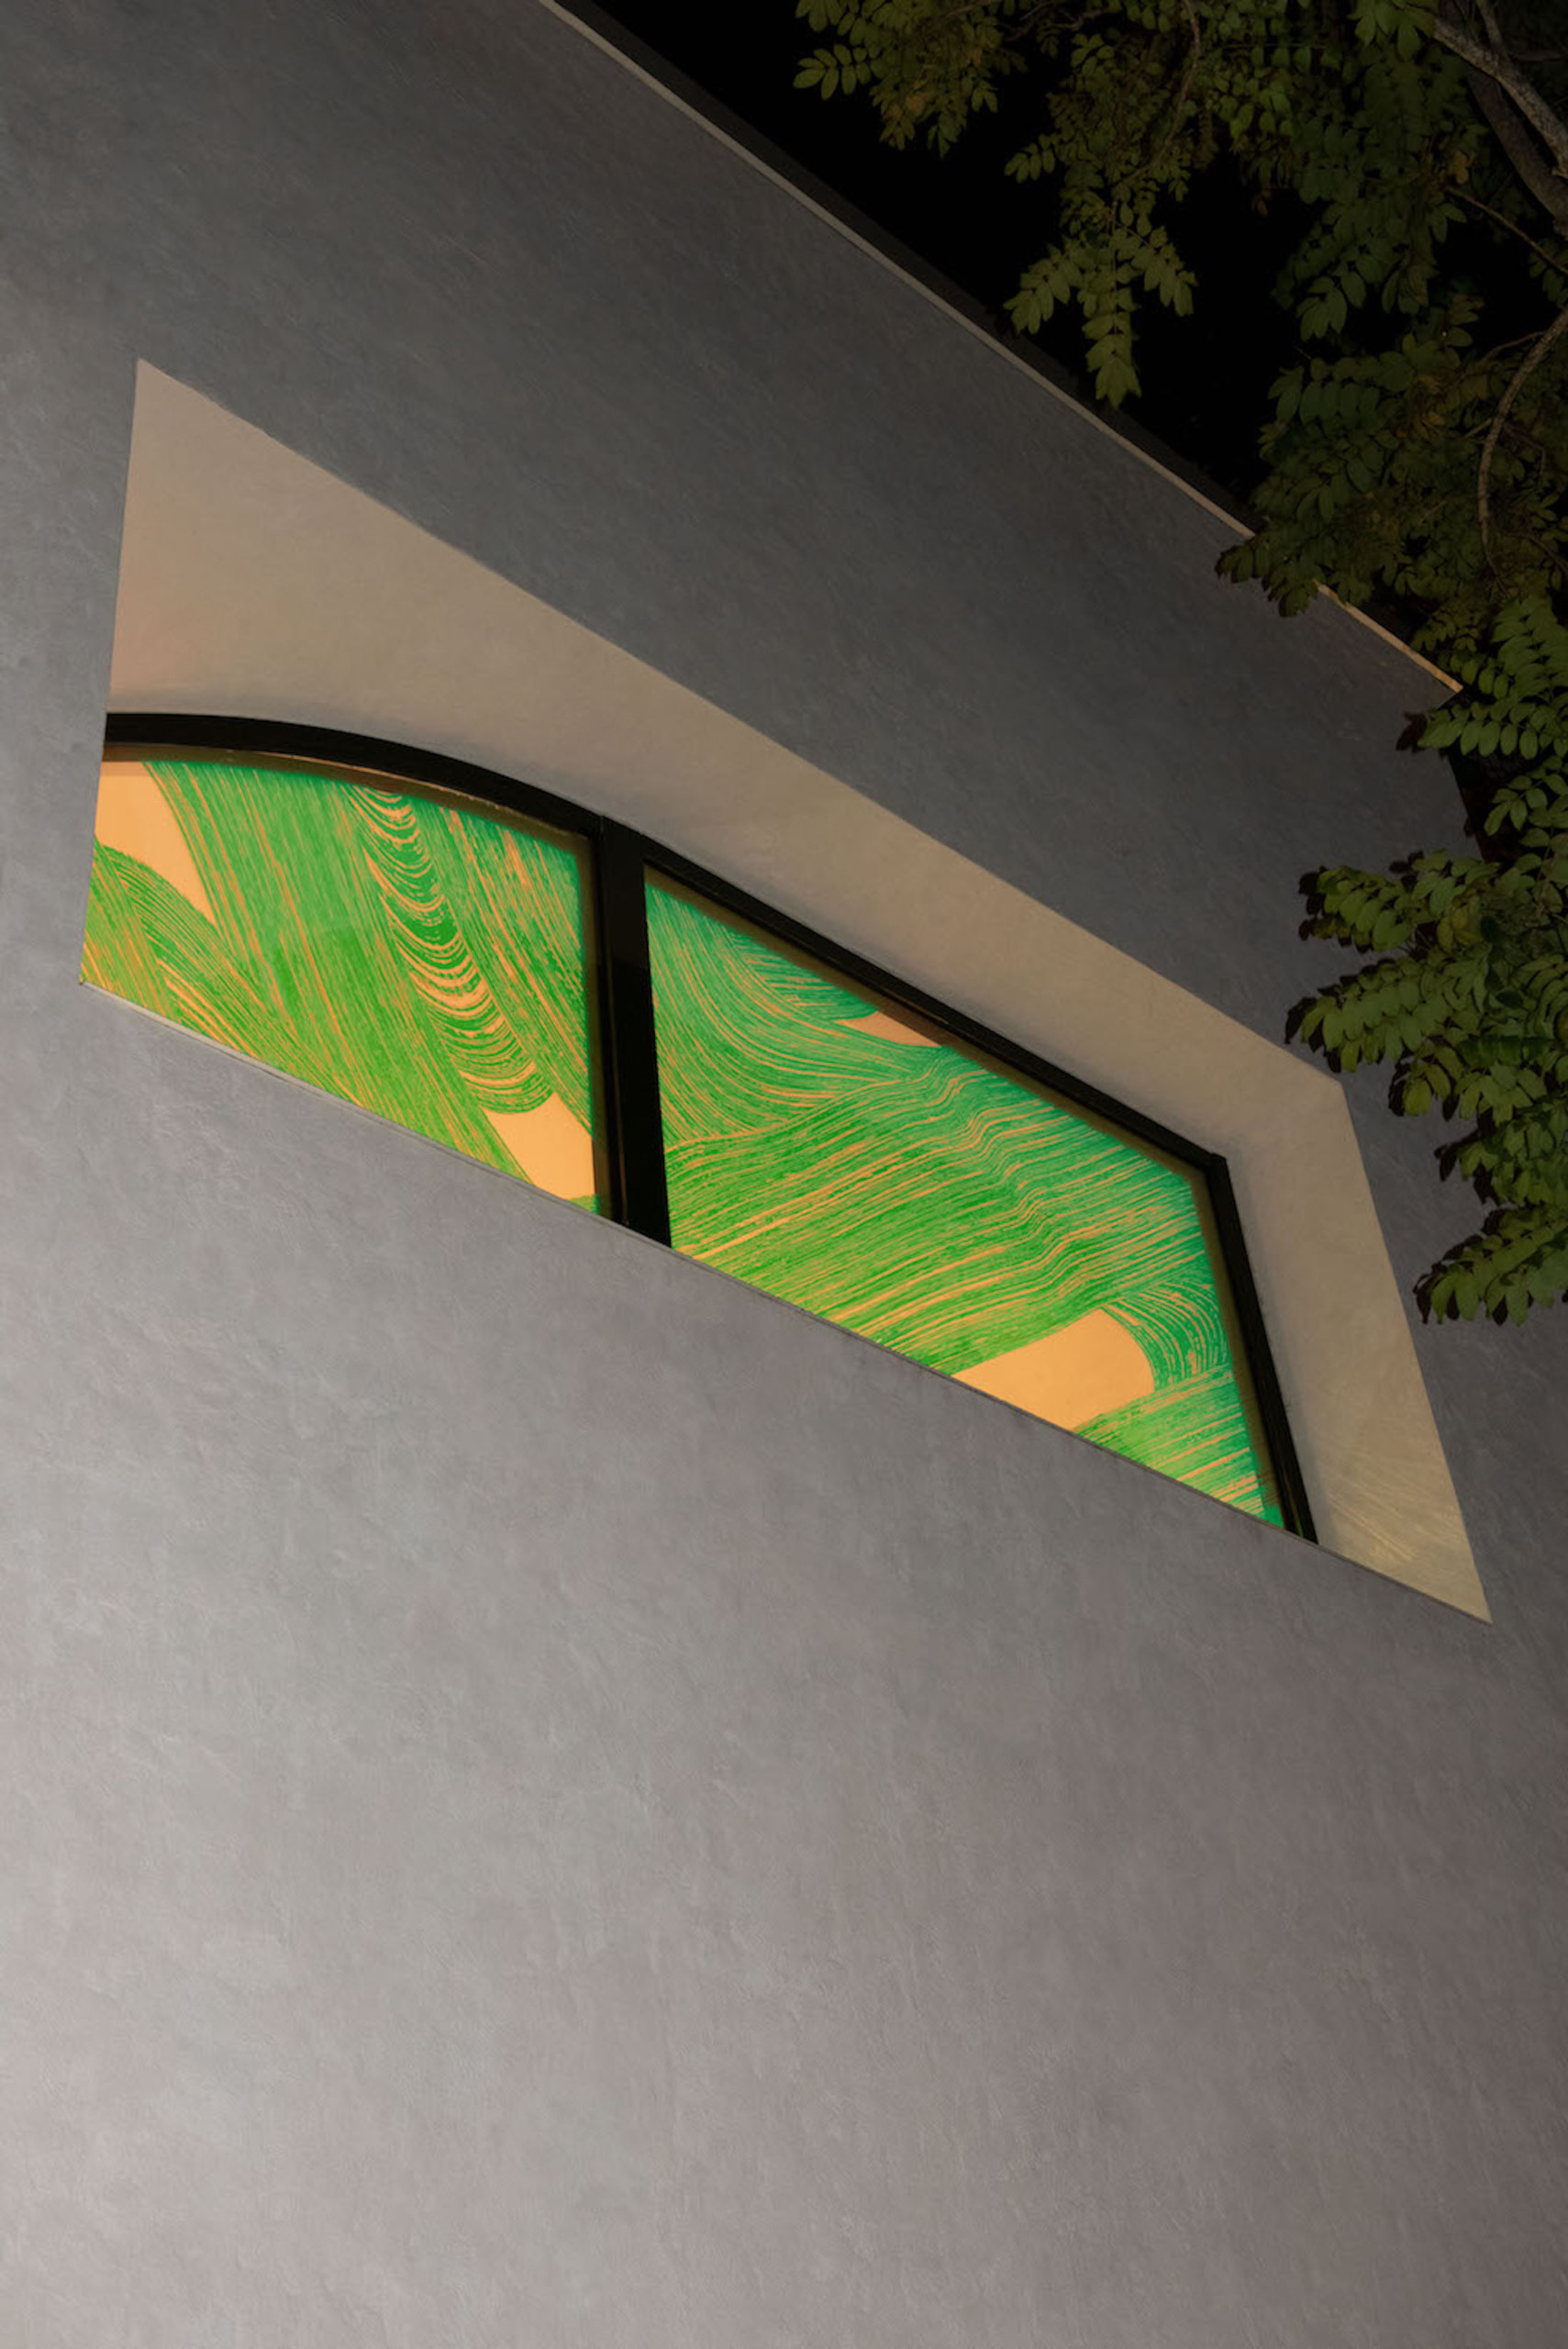 Dark storefront illuminated by window with knotlike pattern embossed on glass